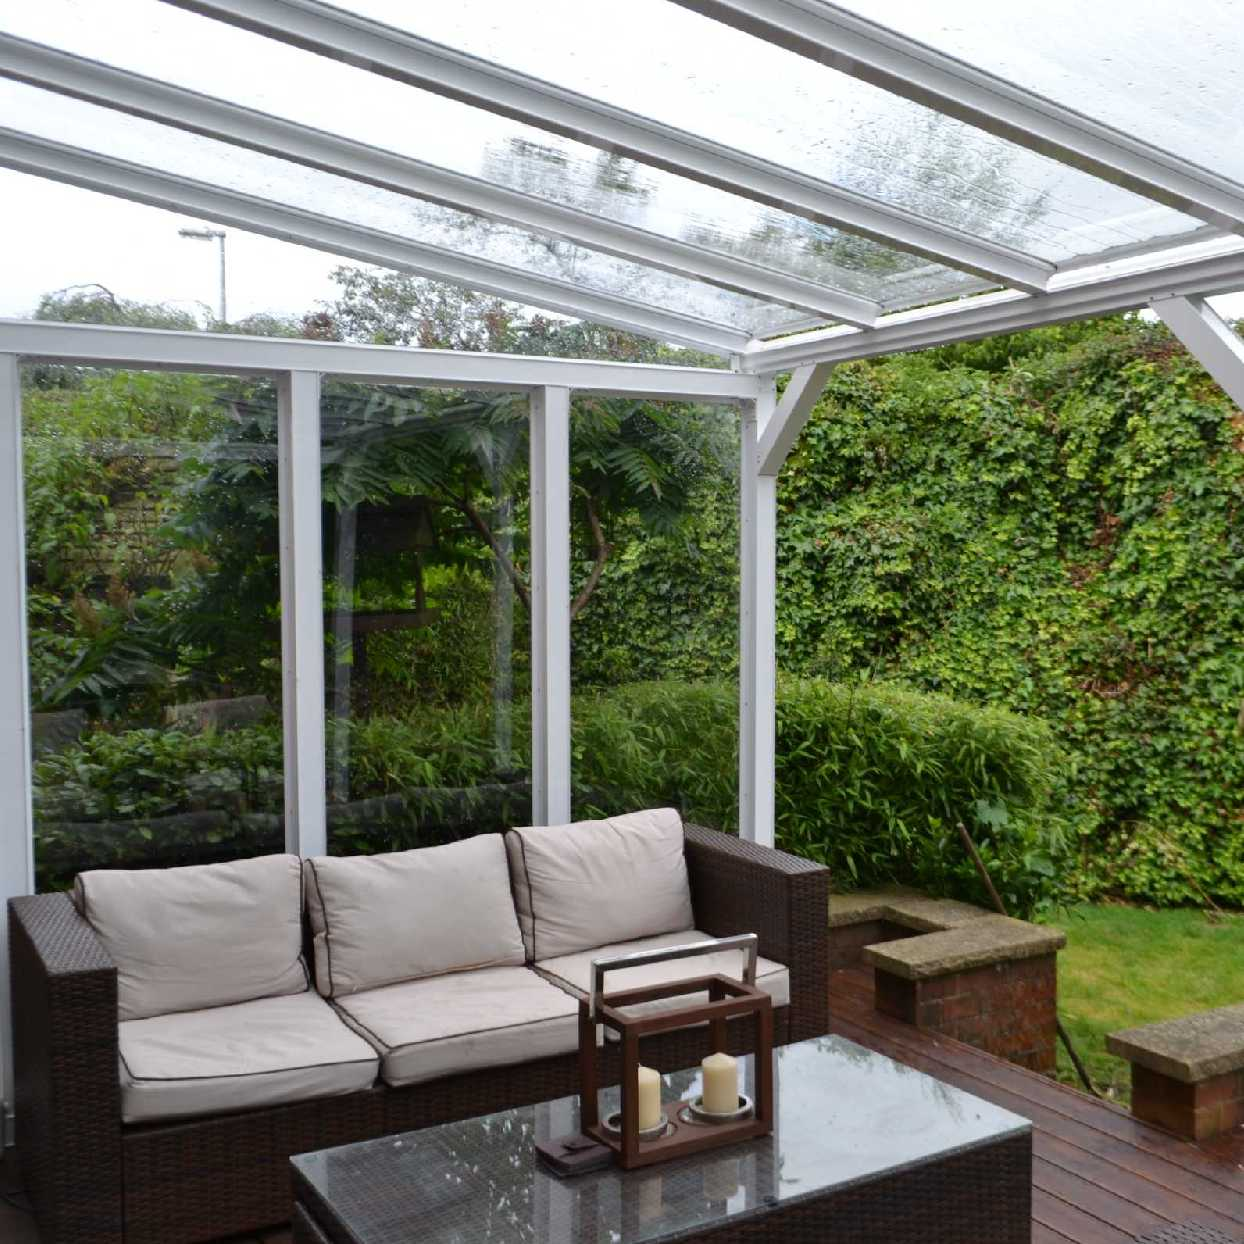 Great selection of Omega Smart Lean-To Canopy with 16mm Polycarbonate Glazing - 5.2m (W) x 1.5m (P), (3) Supporting Posts